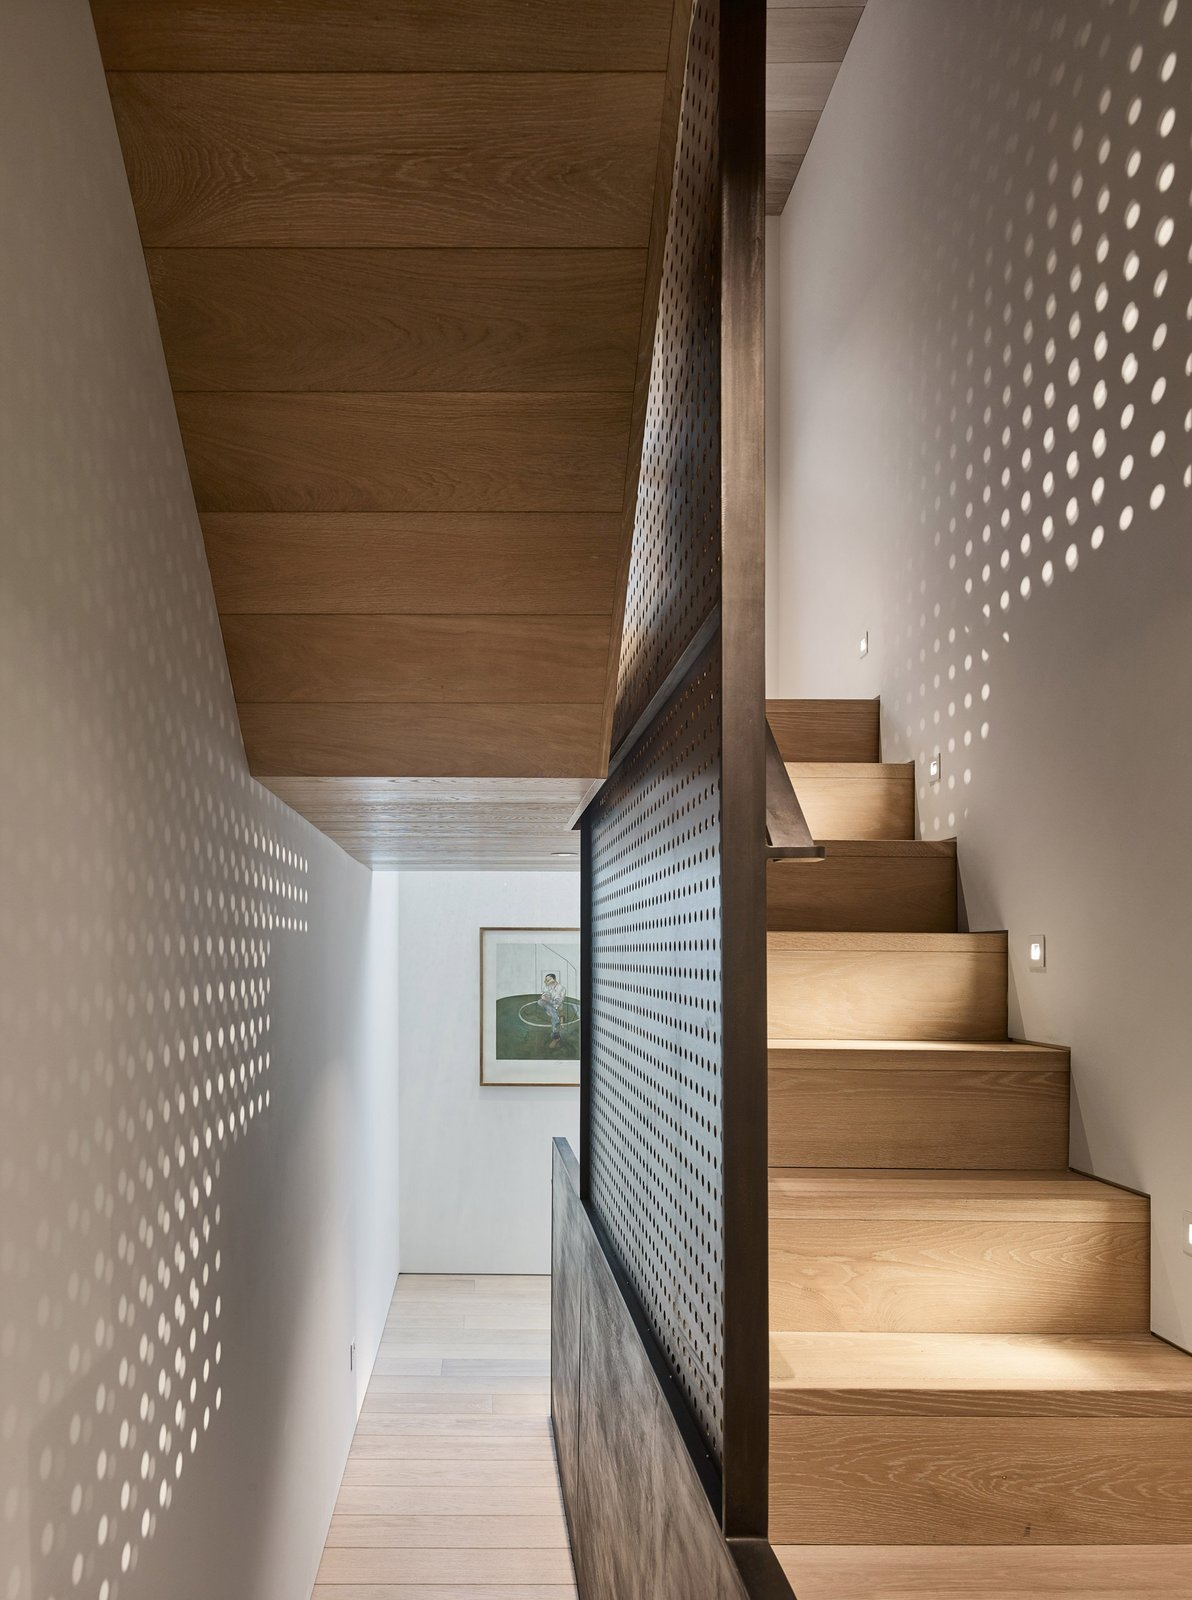 Staircase and Wood Tread  Best Photos from Transparent Perforated Circles Bring Light and Movement to This London Terrace House